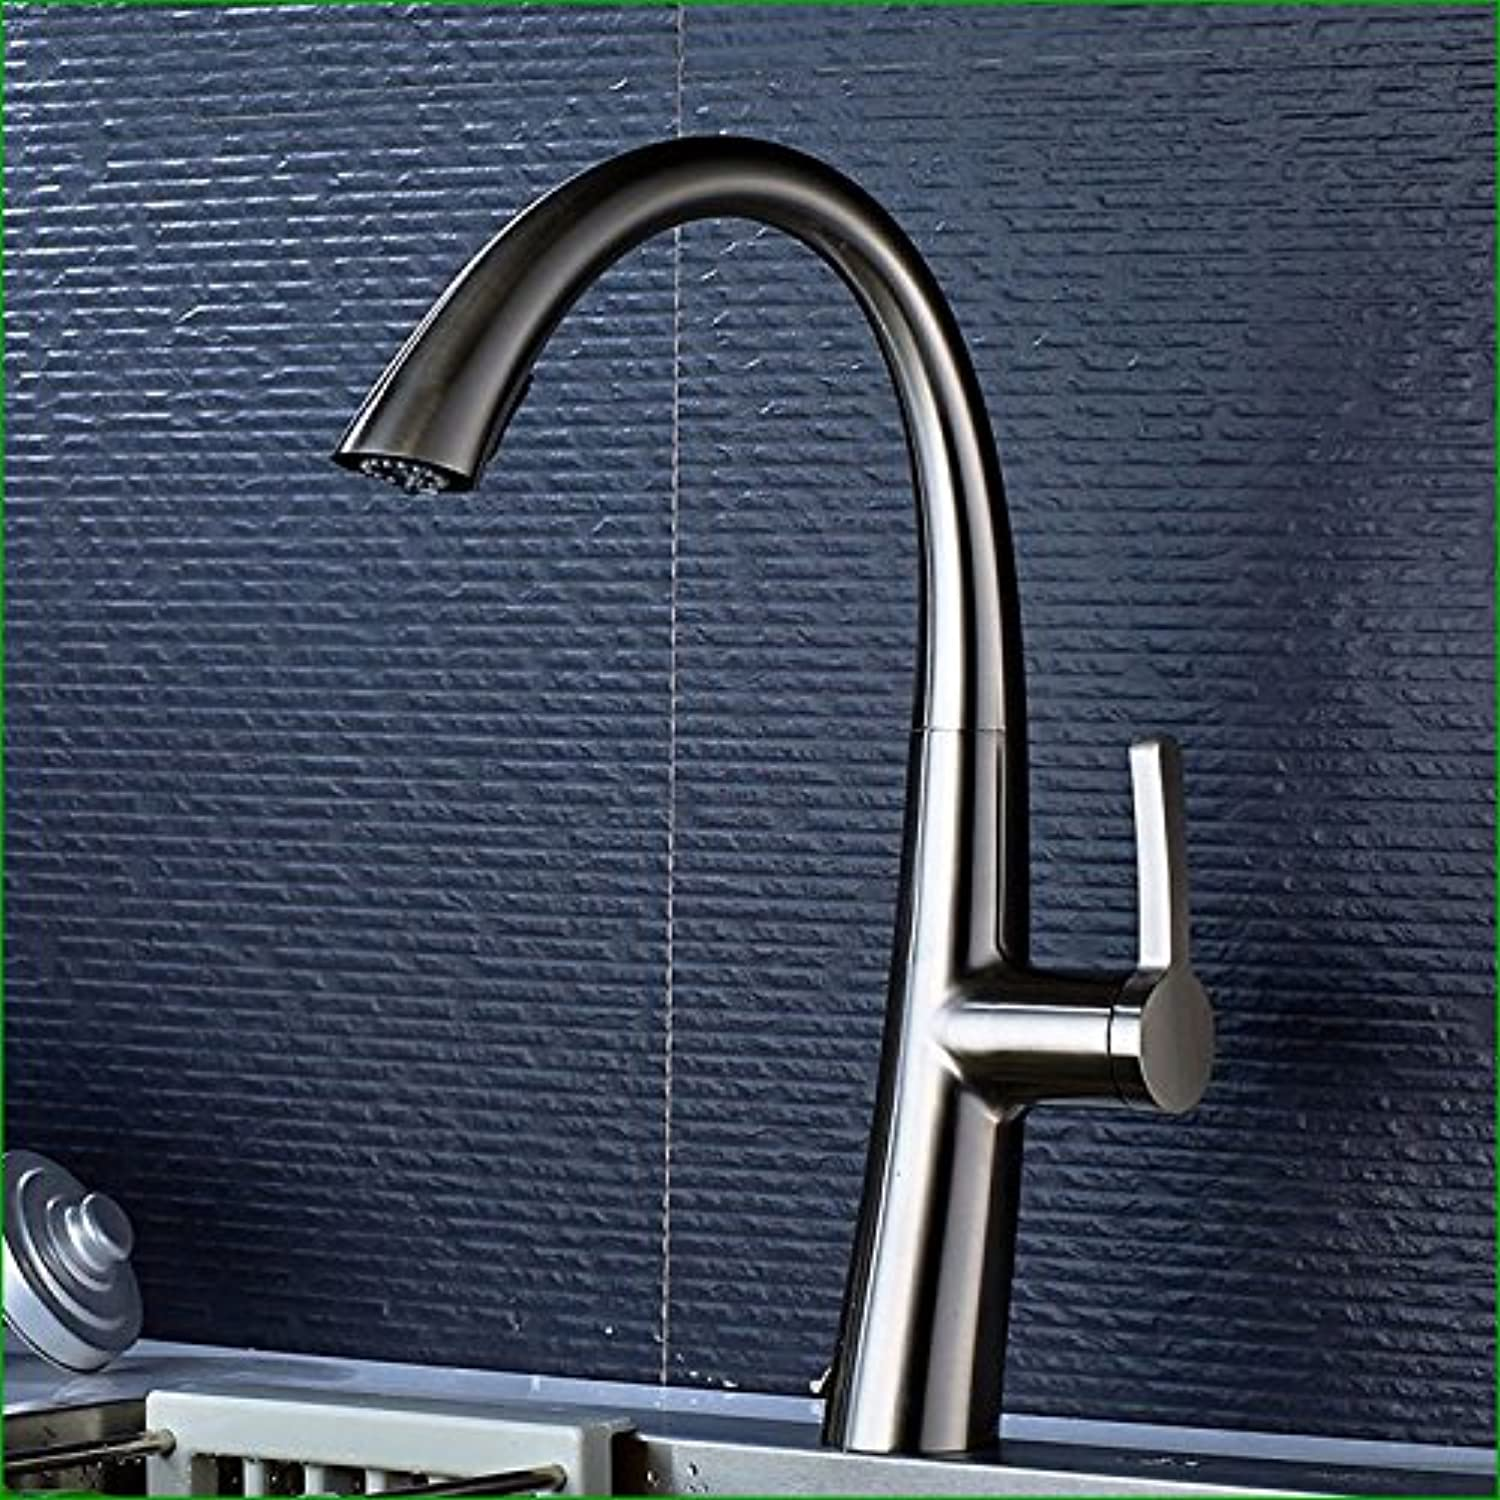 Fbict Full Copper and???Nickel Brushed Kitchen Faucet with redating Sink Faucet for Kitchen Bathroom Faucet Bid Tap